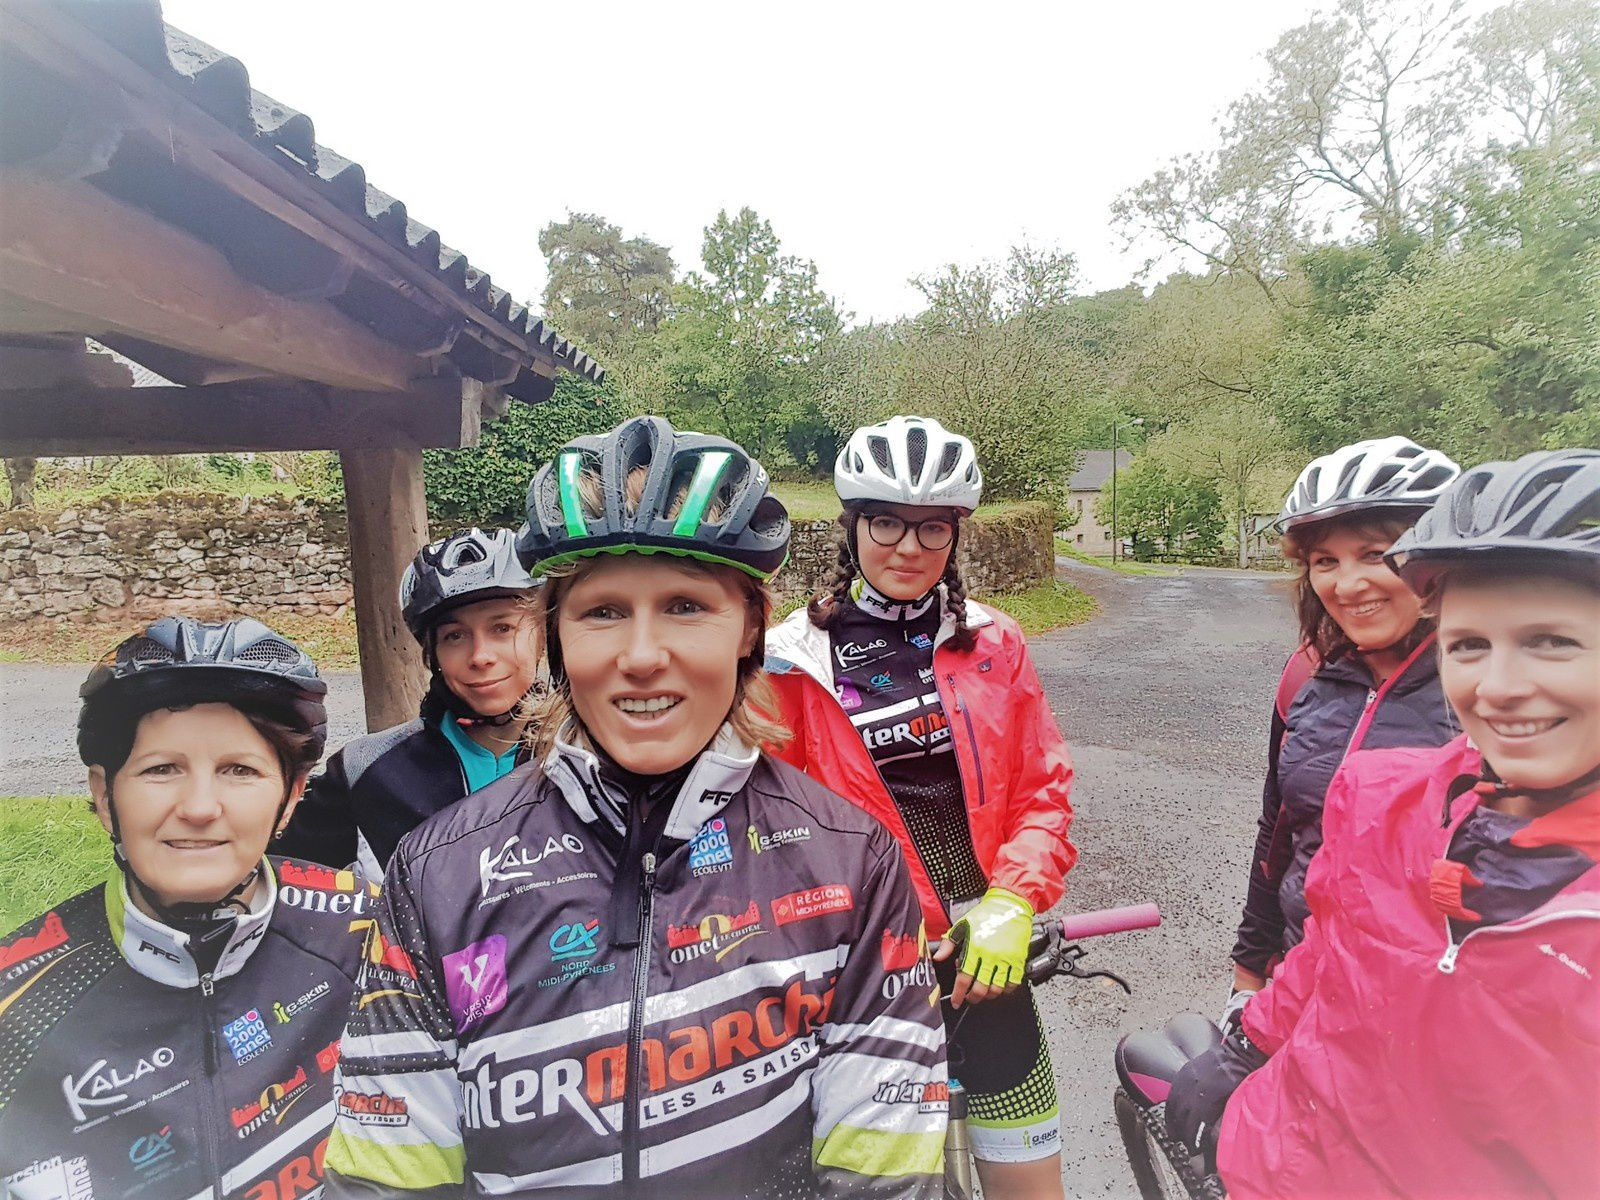 REPRISE ECOLE VTT + SECTION FEMININE 09/09/2017